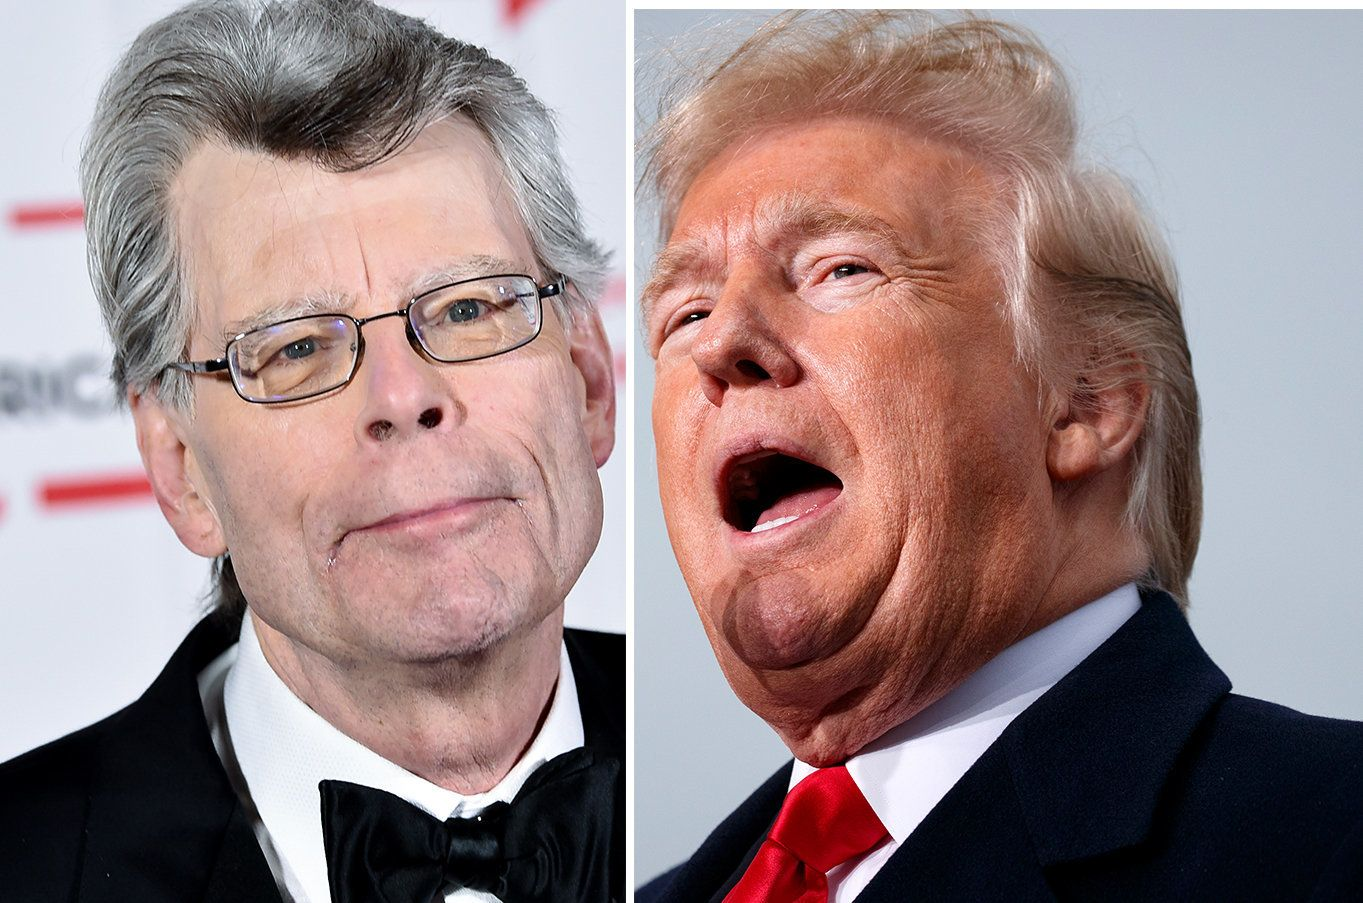 Stephen King Damns Trump With Faint Praise, Lists 3 Things He's 'Delivering'